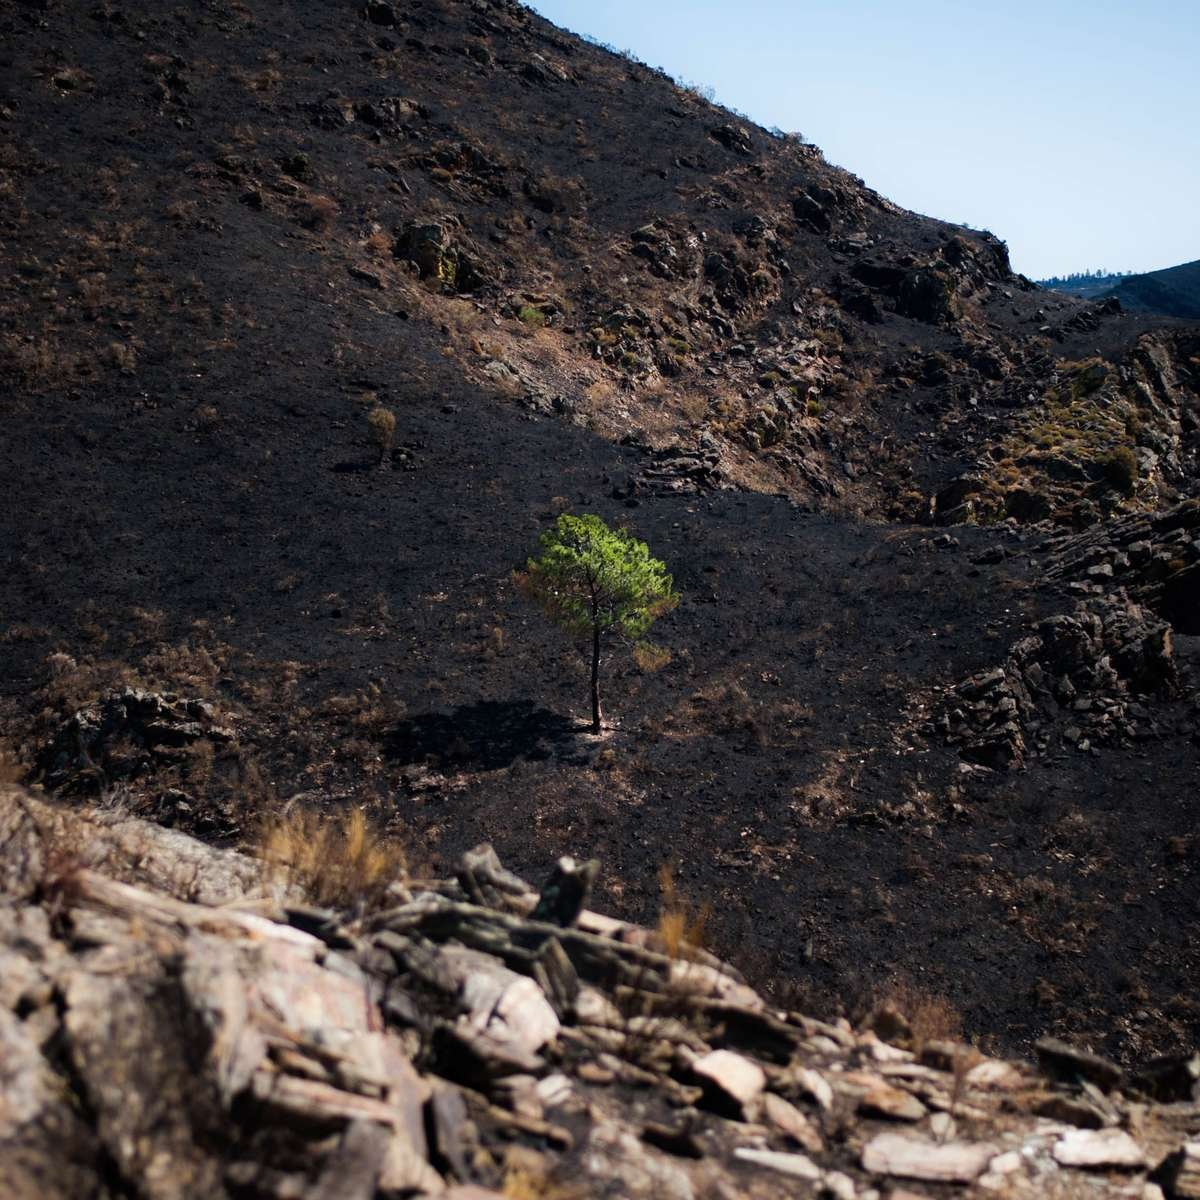 A lucky tree that escaped the fire stands alone on a charred hillside. The only green in a 5km radius.